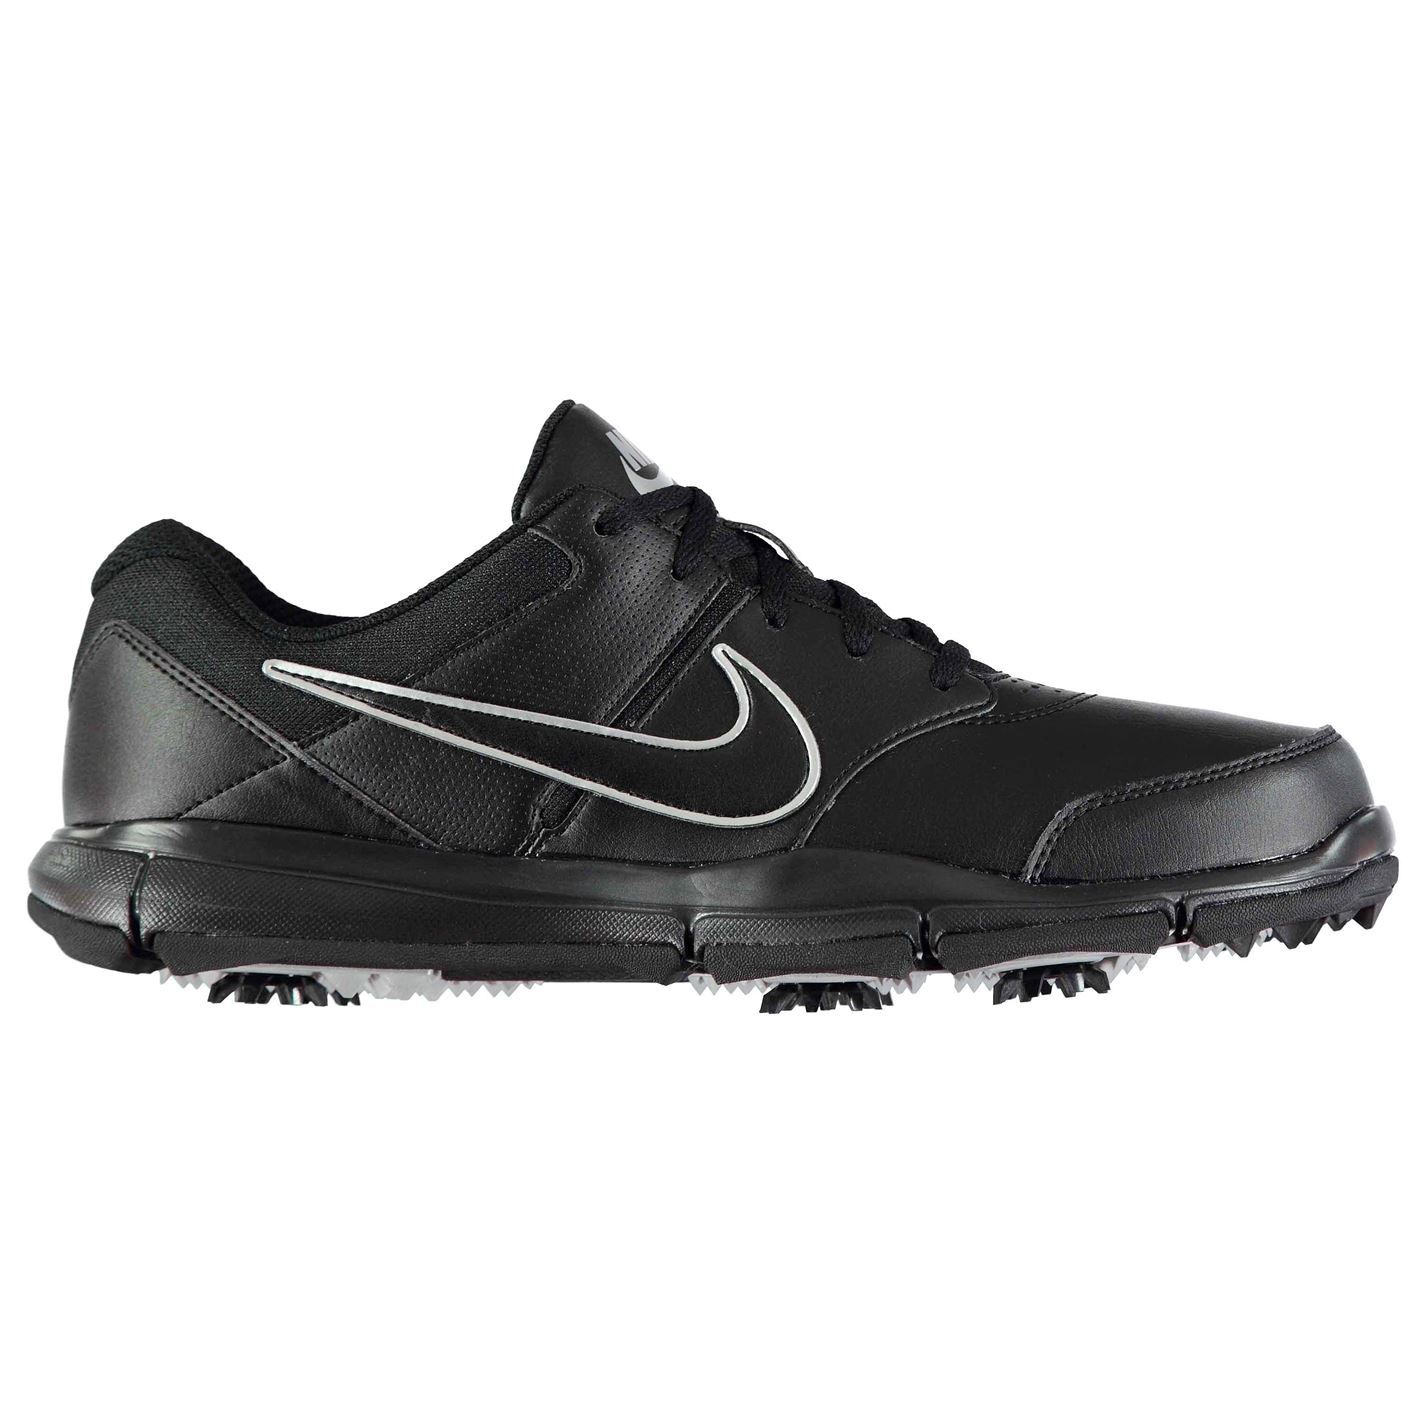 Nike-Durasport-4-Spiked-Golf-Shoes-Mens-Spikes-Footwear thumbnail 9